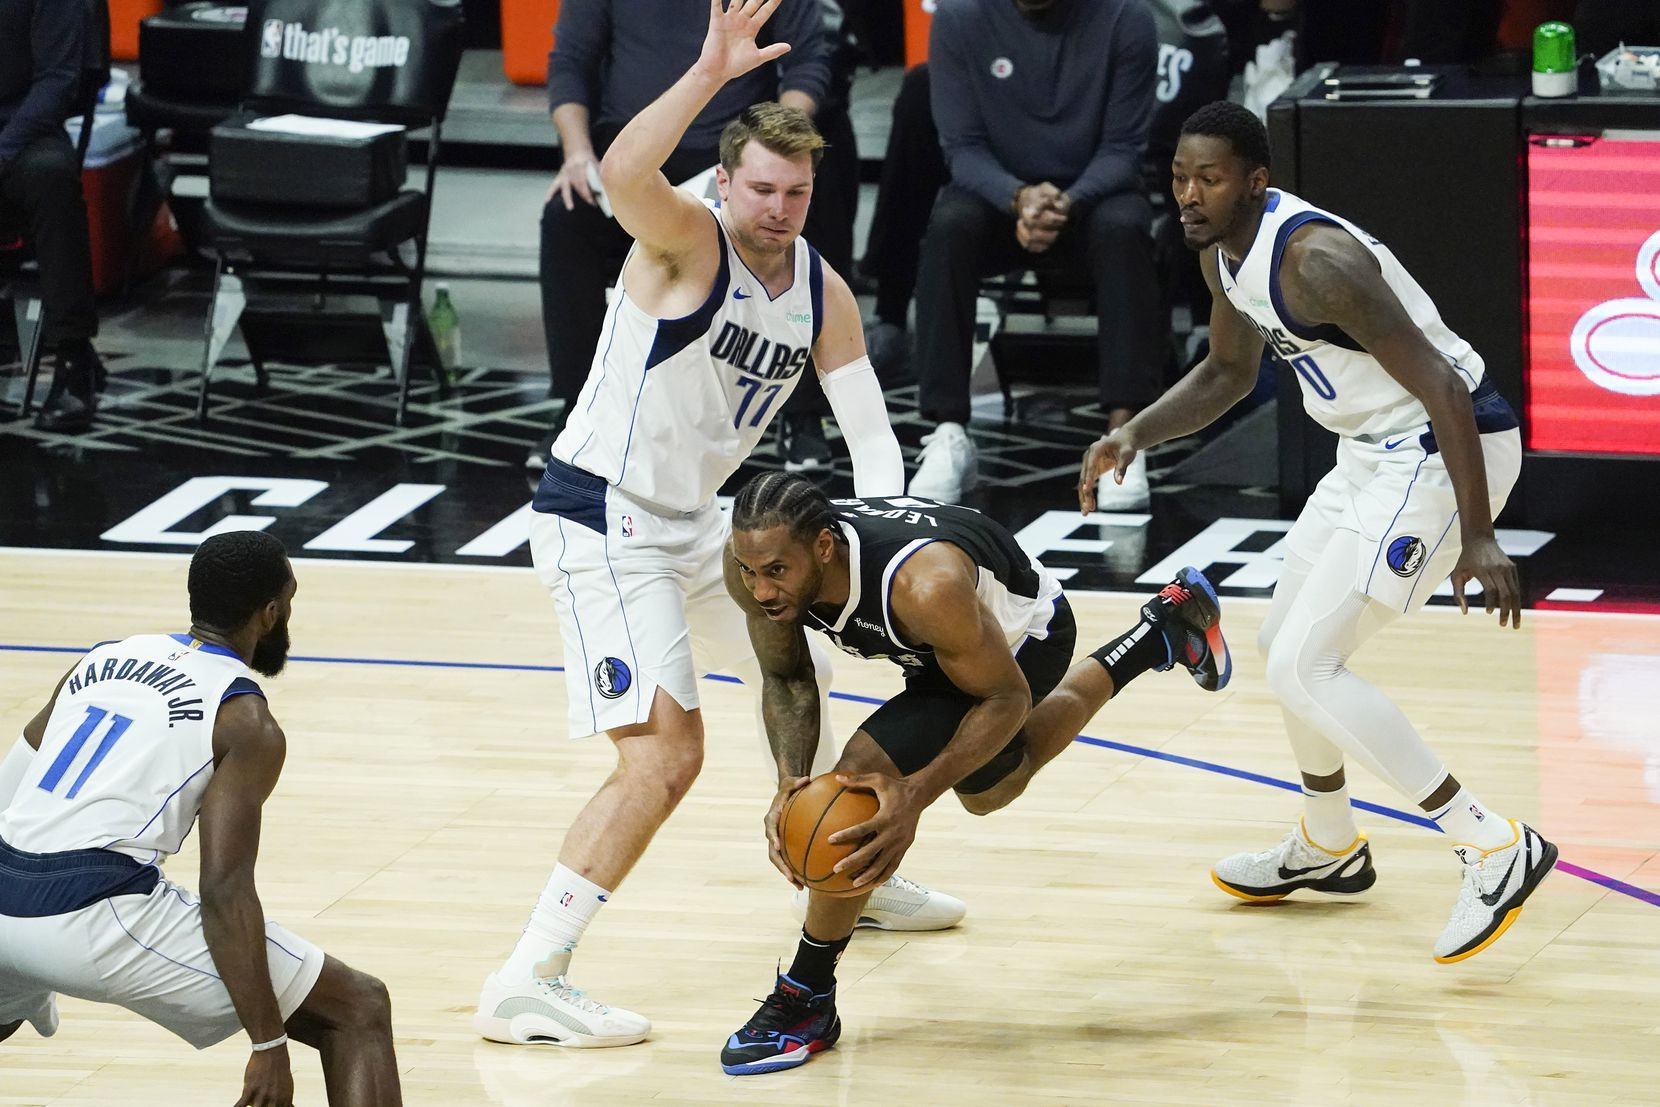 LA Clippers forward Kawhi Leonard (2) tries to drive between Dallas Mavericks guard Luka Doncic (77) and forward Dorian Finney-Smith (10) during the second quarter of an NBA playoff basketball game at the Staples Center on Wednesday, June 2, 2021, in Los Angeles.  (Smiley N. Pool/The Dallas Morning News)